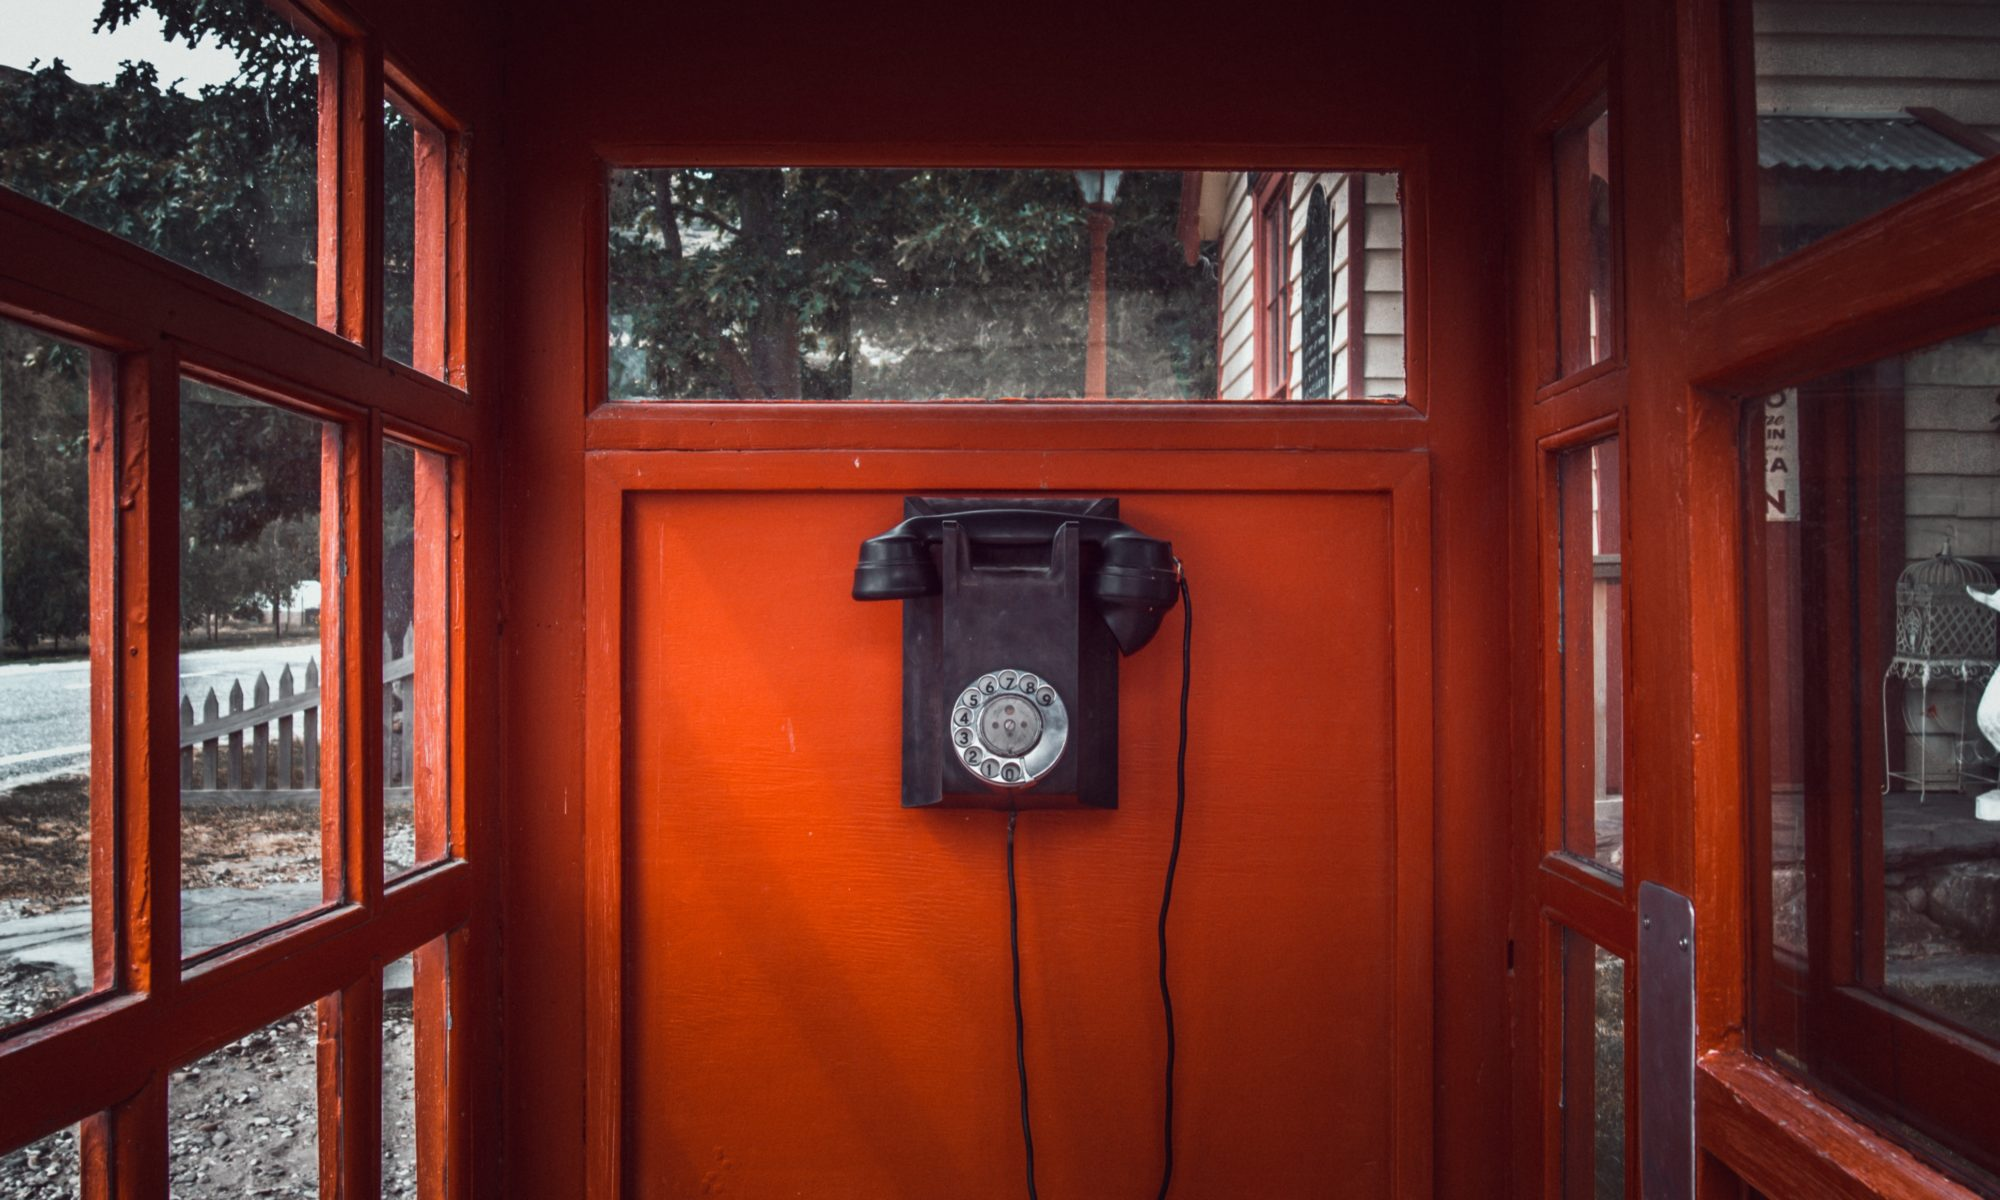 old- fashioned telephone in a red phone box